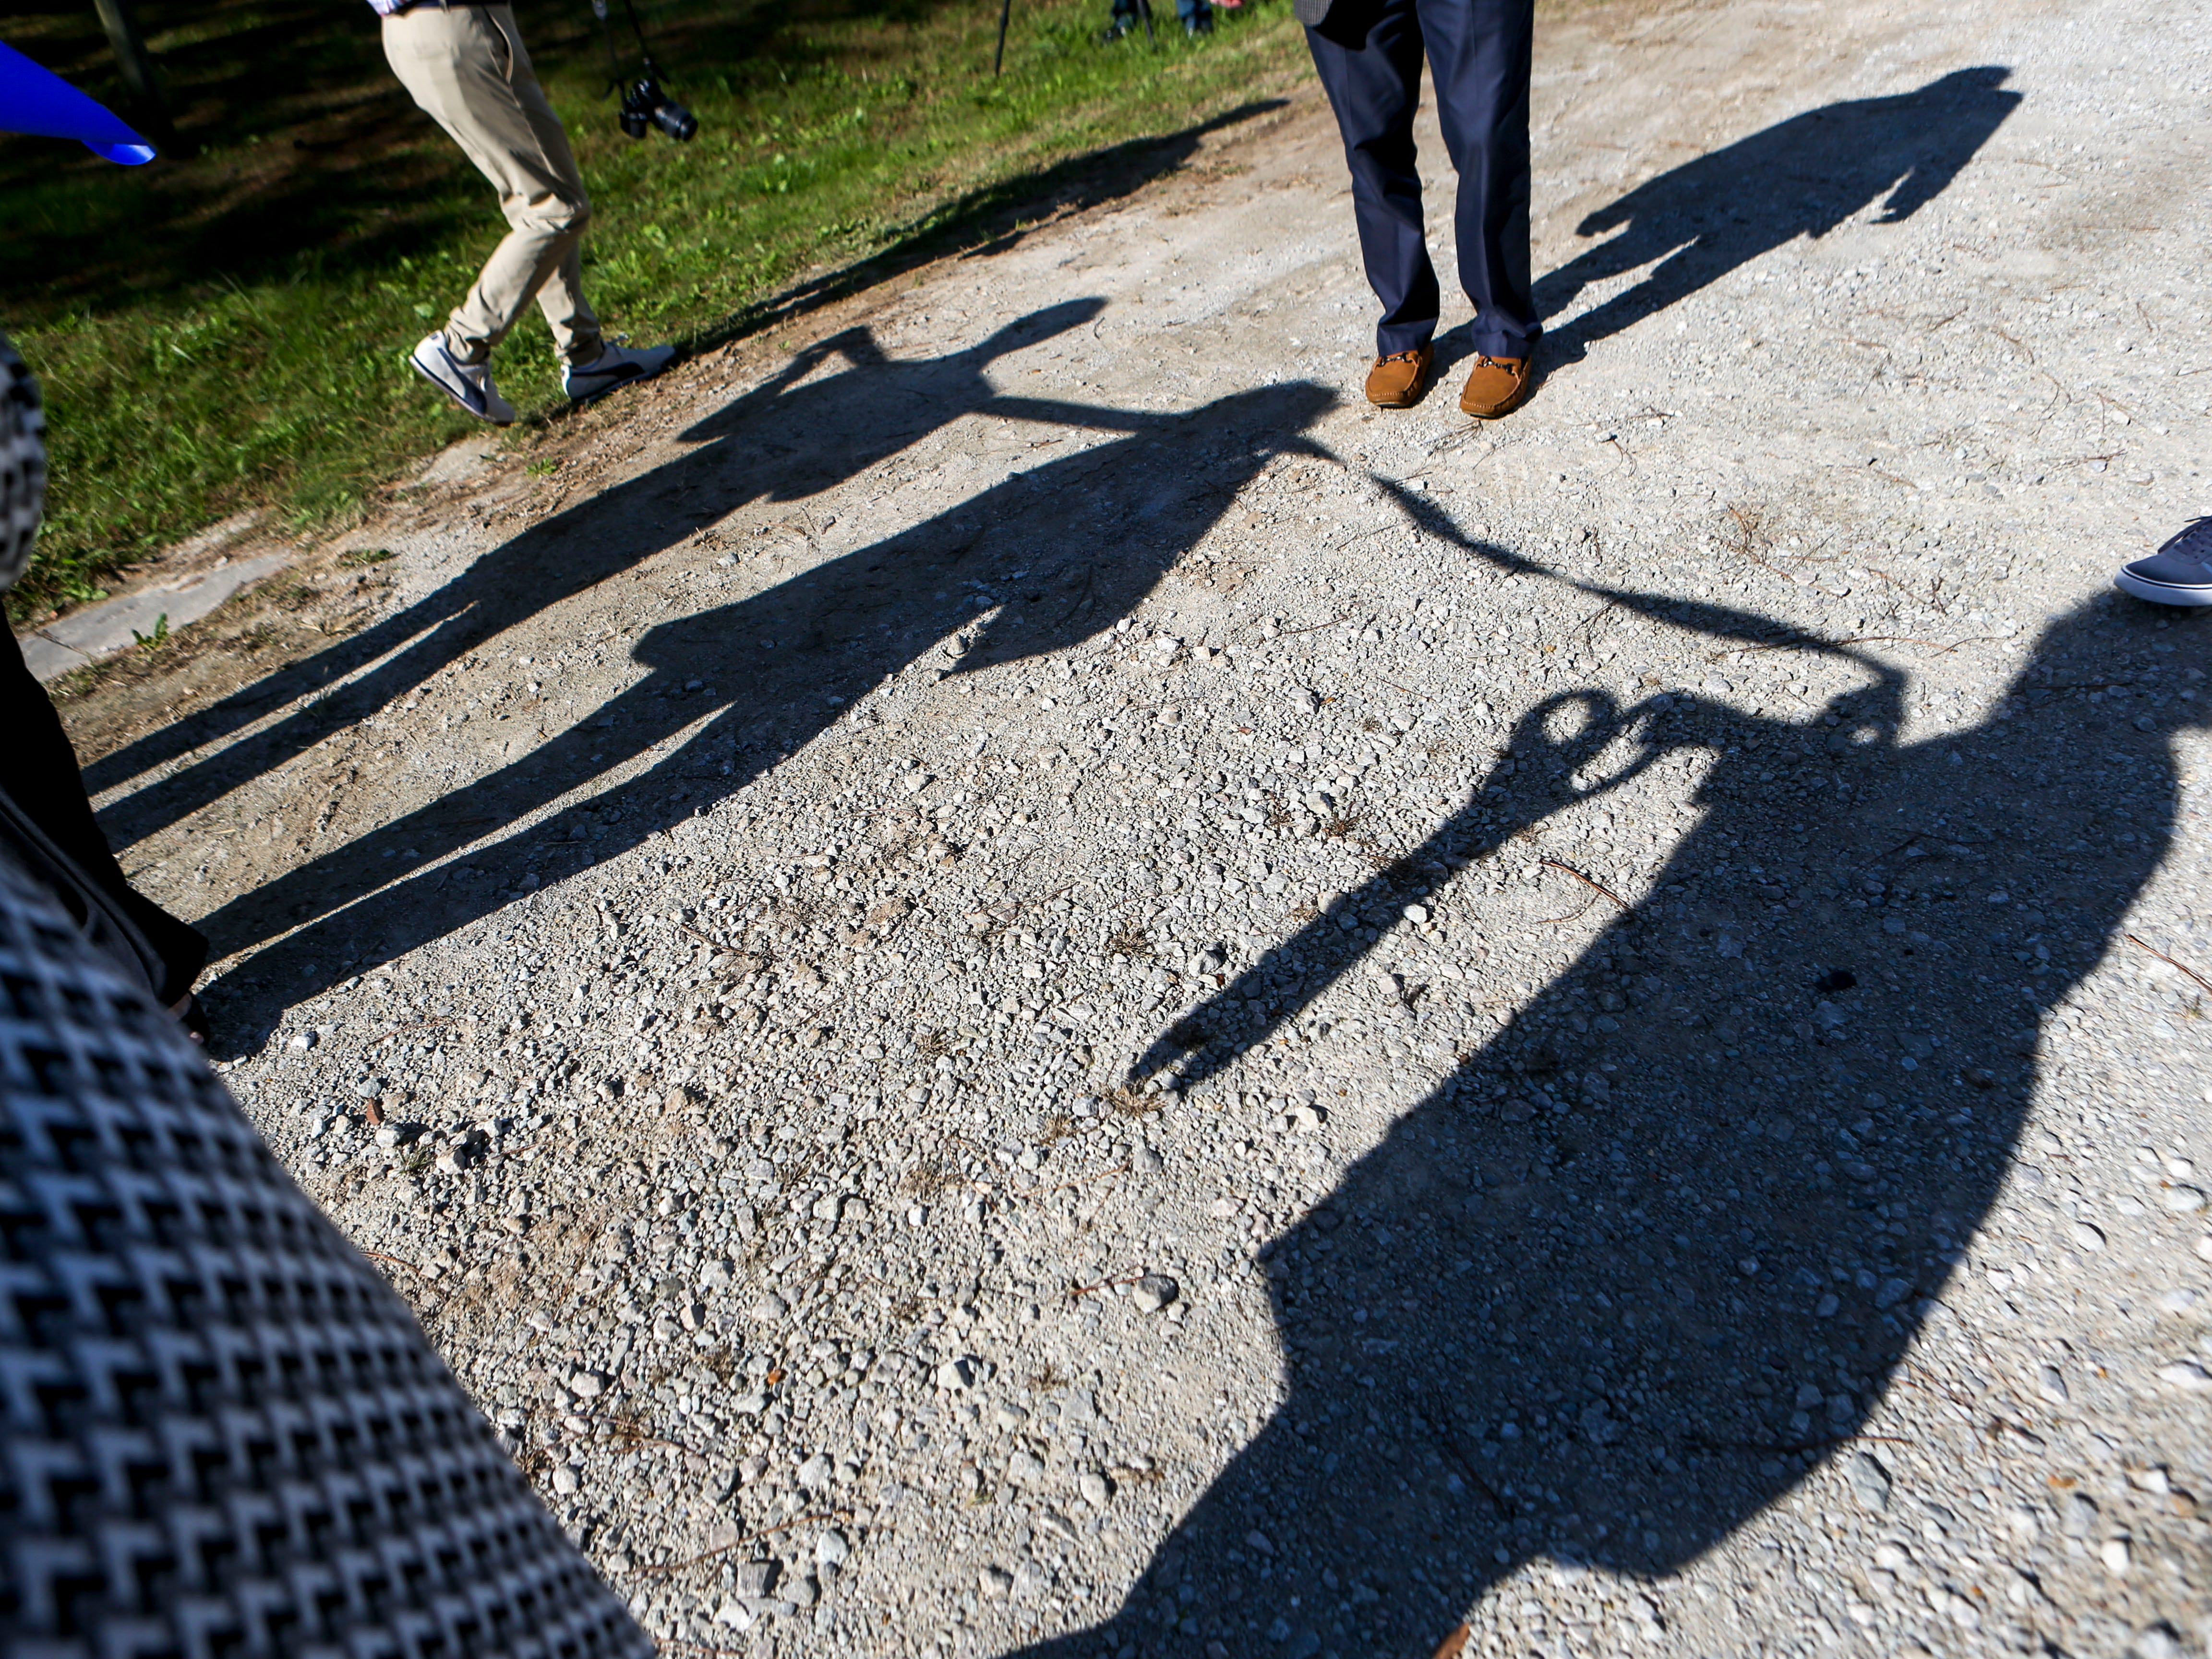 Visitors stretch out a roll of ribbon that will be cut during a ceremonial opening for the expansion of wireless broadband coverage through AT&T cell towers at 4567 Brownsville Hwy in Denmark, Tenn., on Tuesday, Oct. 30, 2018.